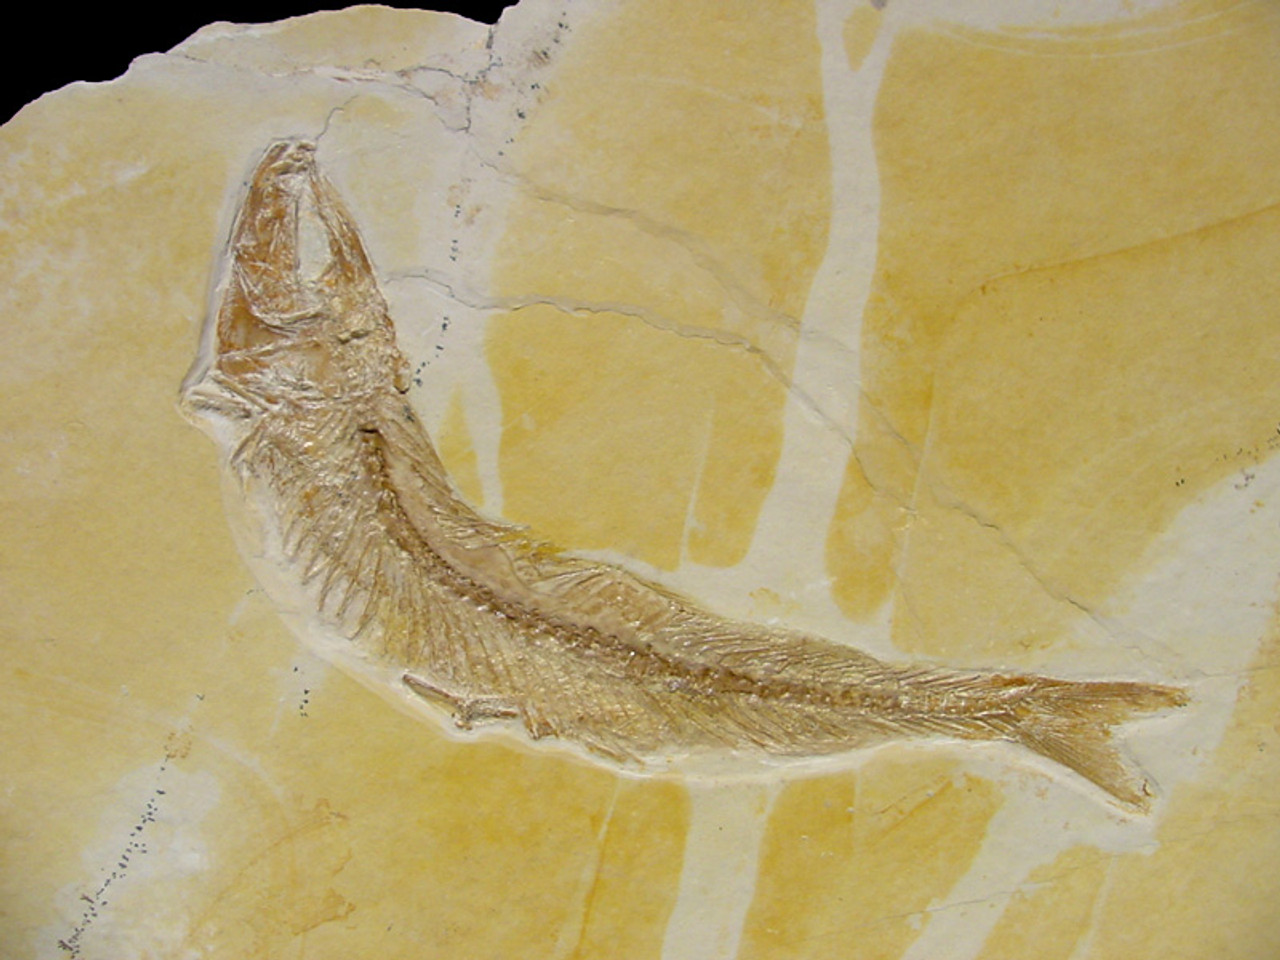 FINEST LARGE THARSIS FISH FOSSIL FROM THE FAMOUS JURASSIC SOLNHOFEN DEPOSITS  *F027